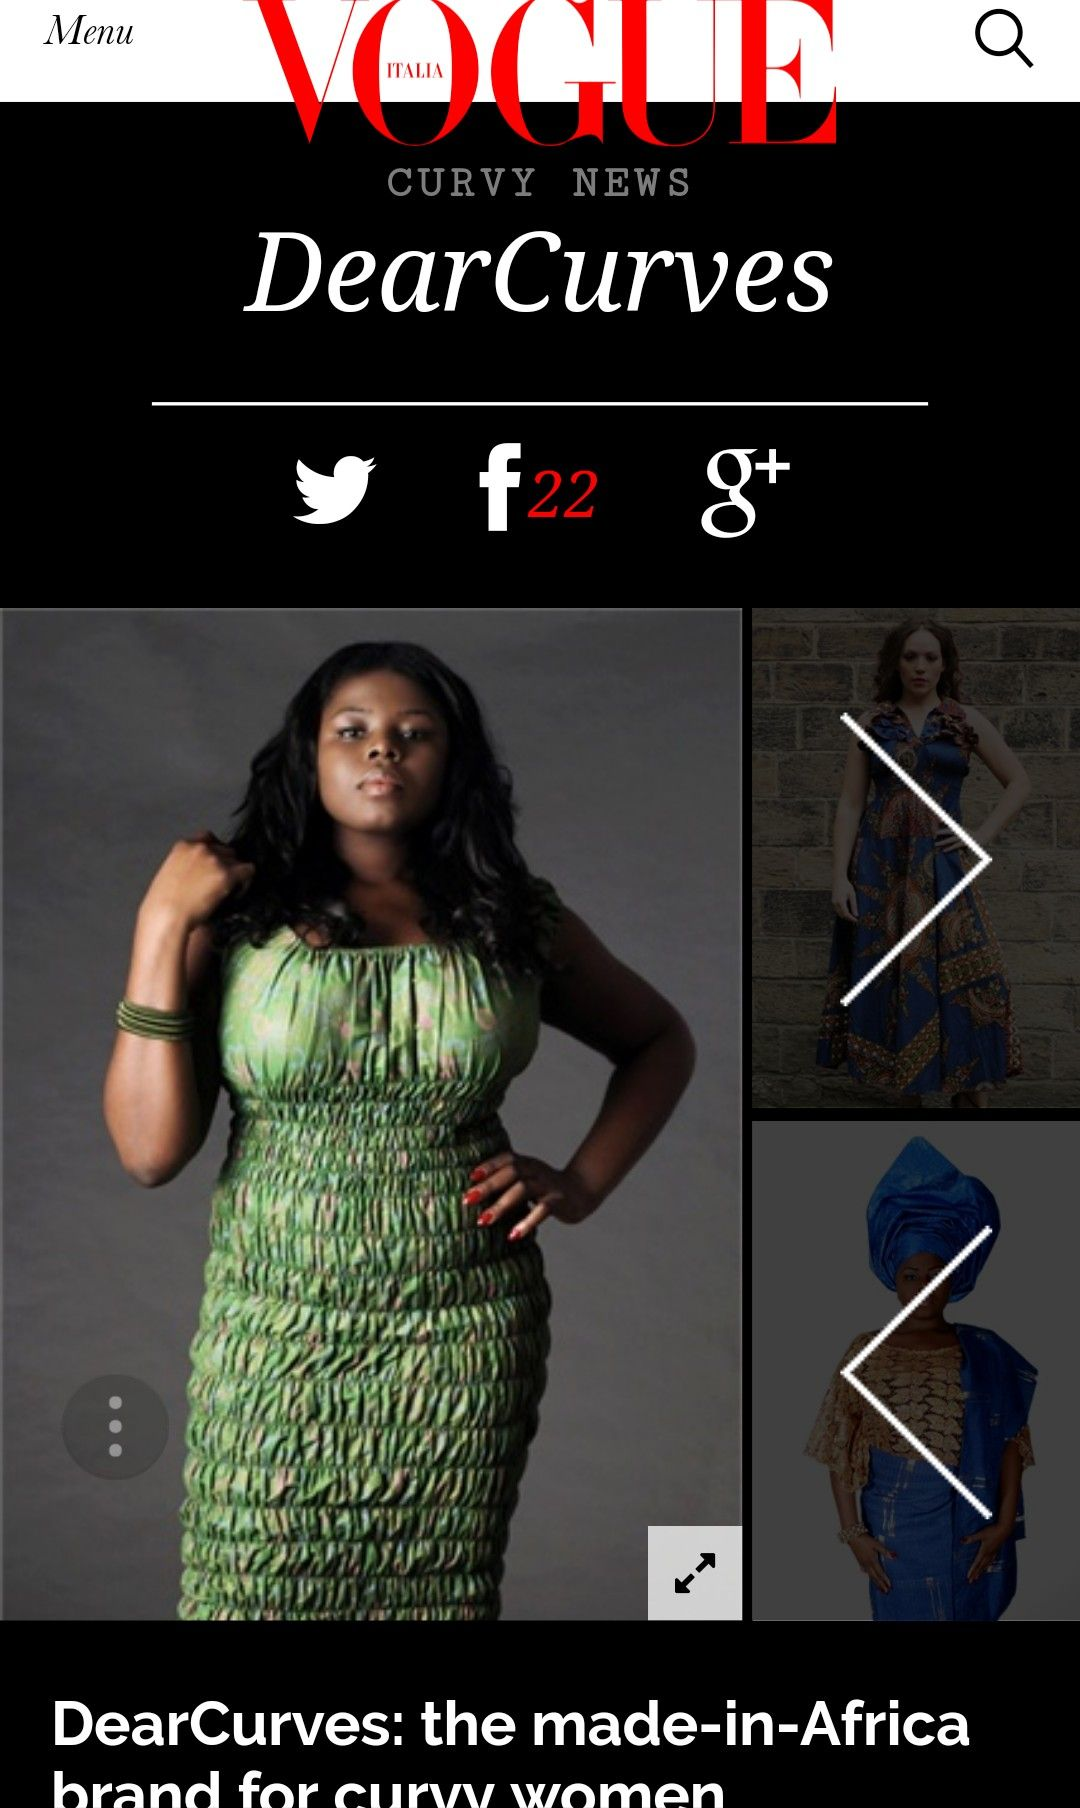 Pin by Dearcurves on 2018 Africa, Curvy, Menu